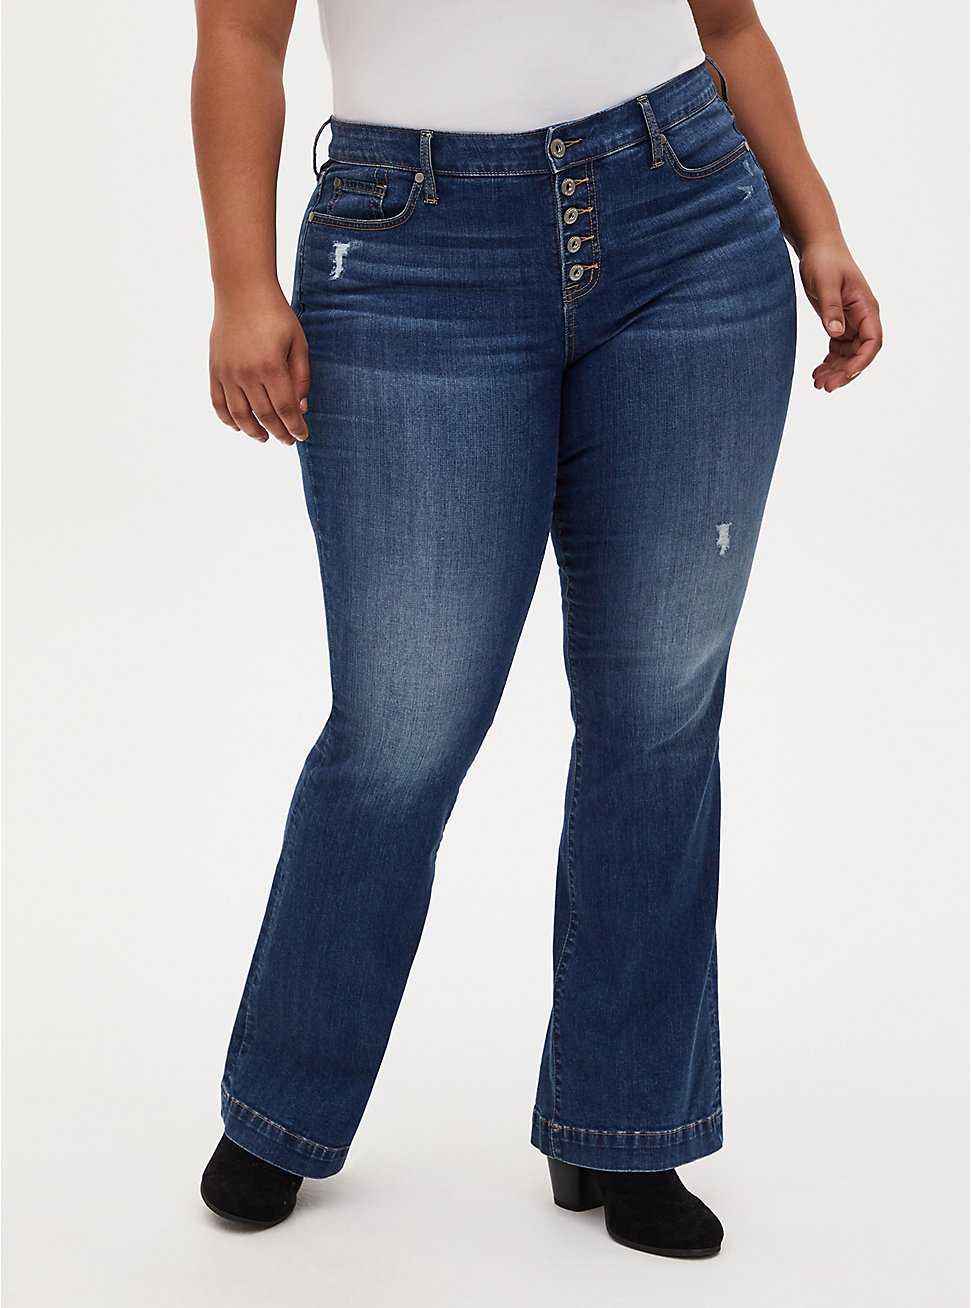 Mid Rise Flare Jean - Vintage Stretch Medium Wash, ROCKSTAR, hi-res